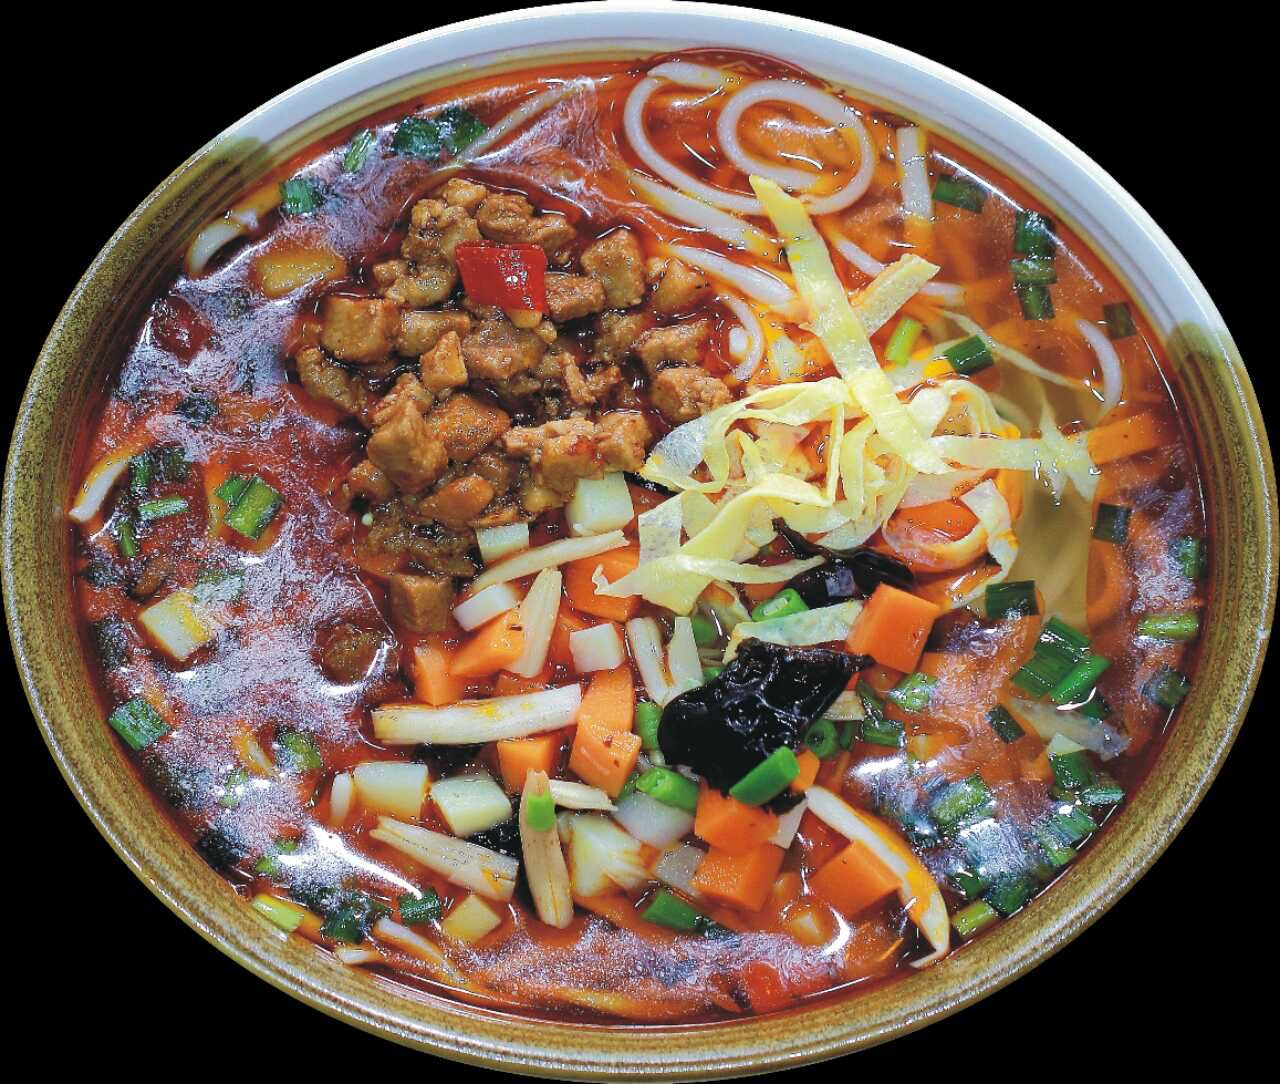 Chinease Food: Chinese Food & Cuisine « Easy Tour China